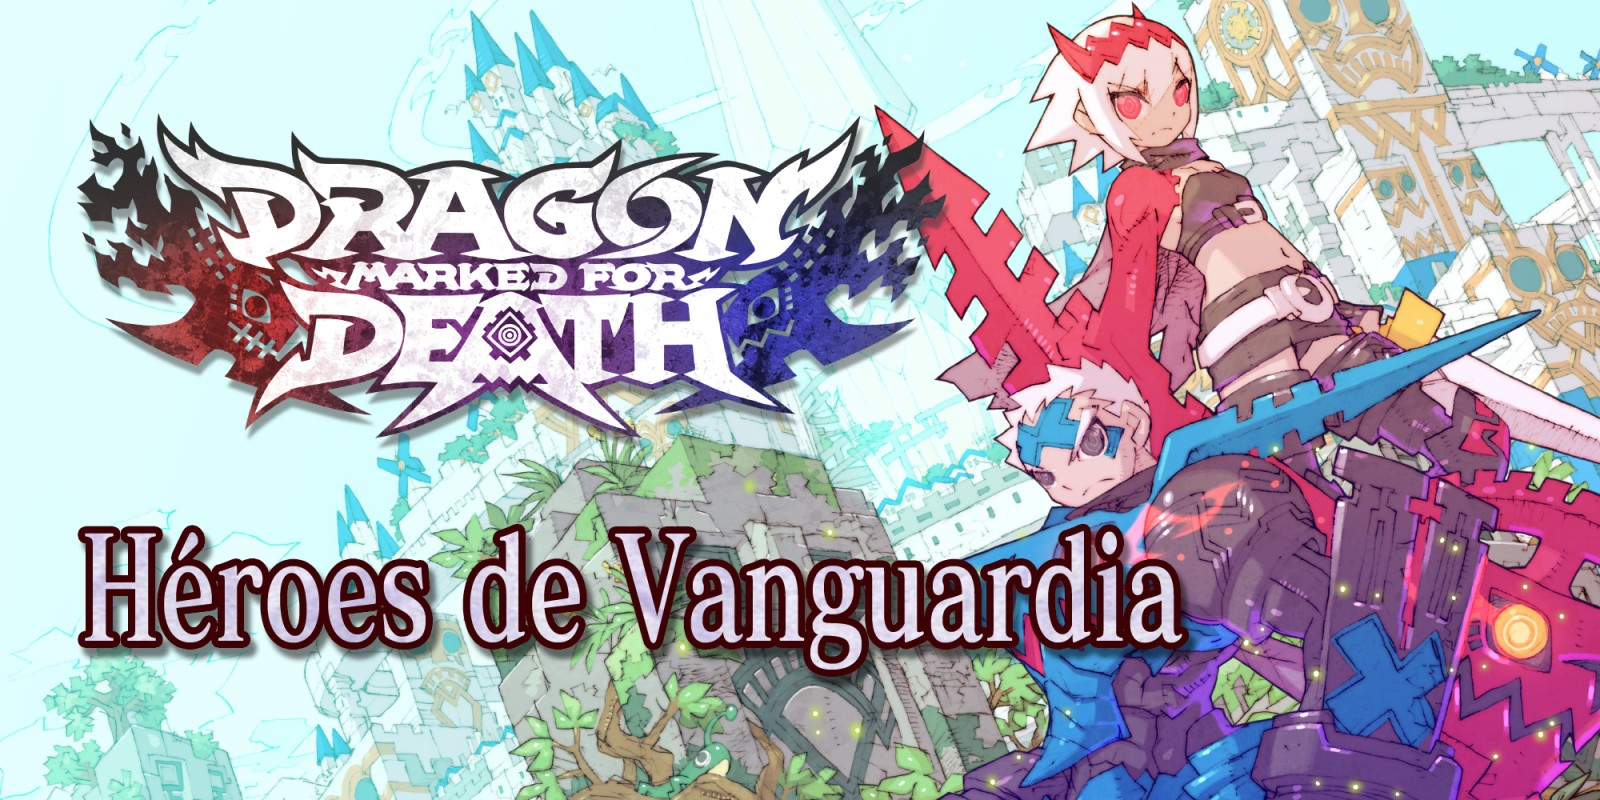 Dragon Marked for Death: Héroes de Vanguardia